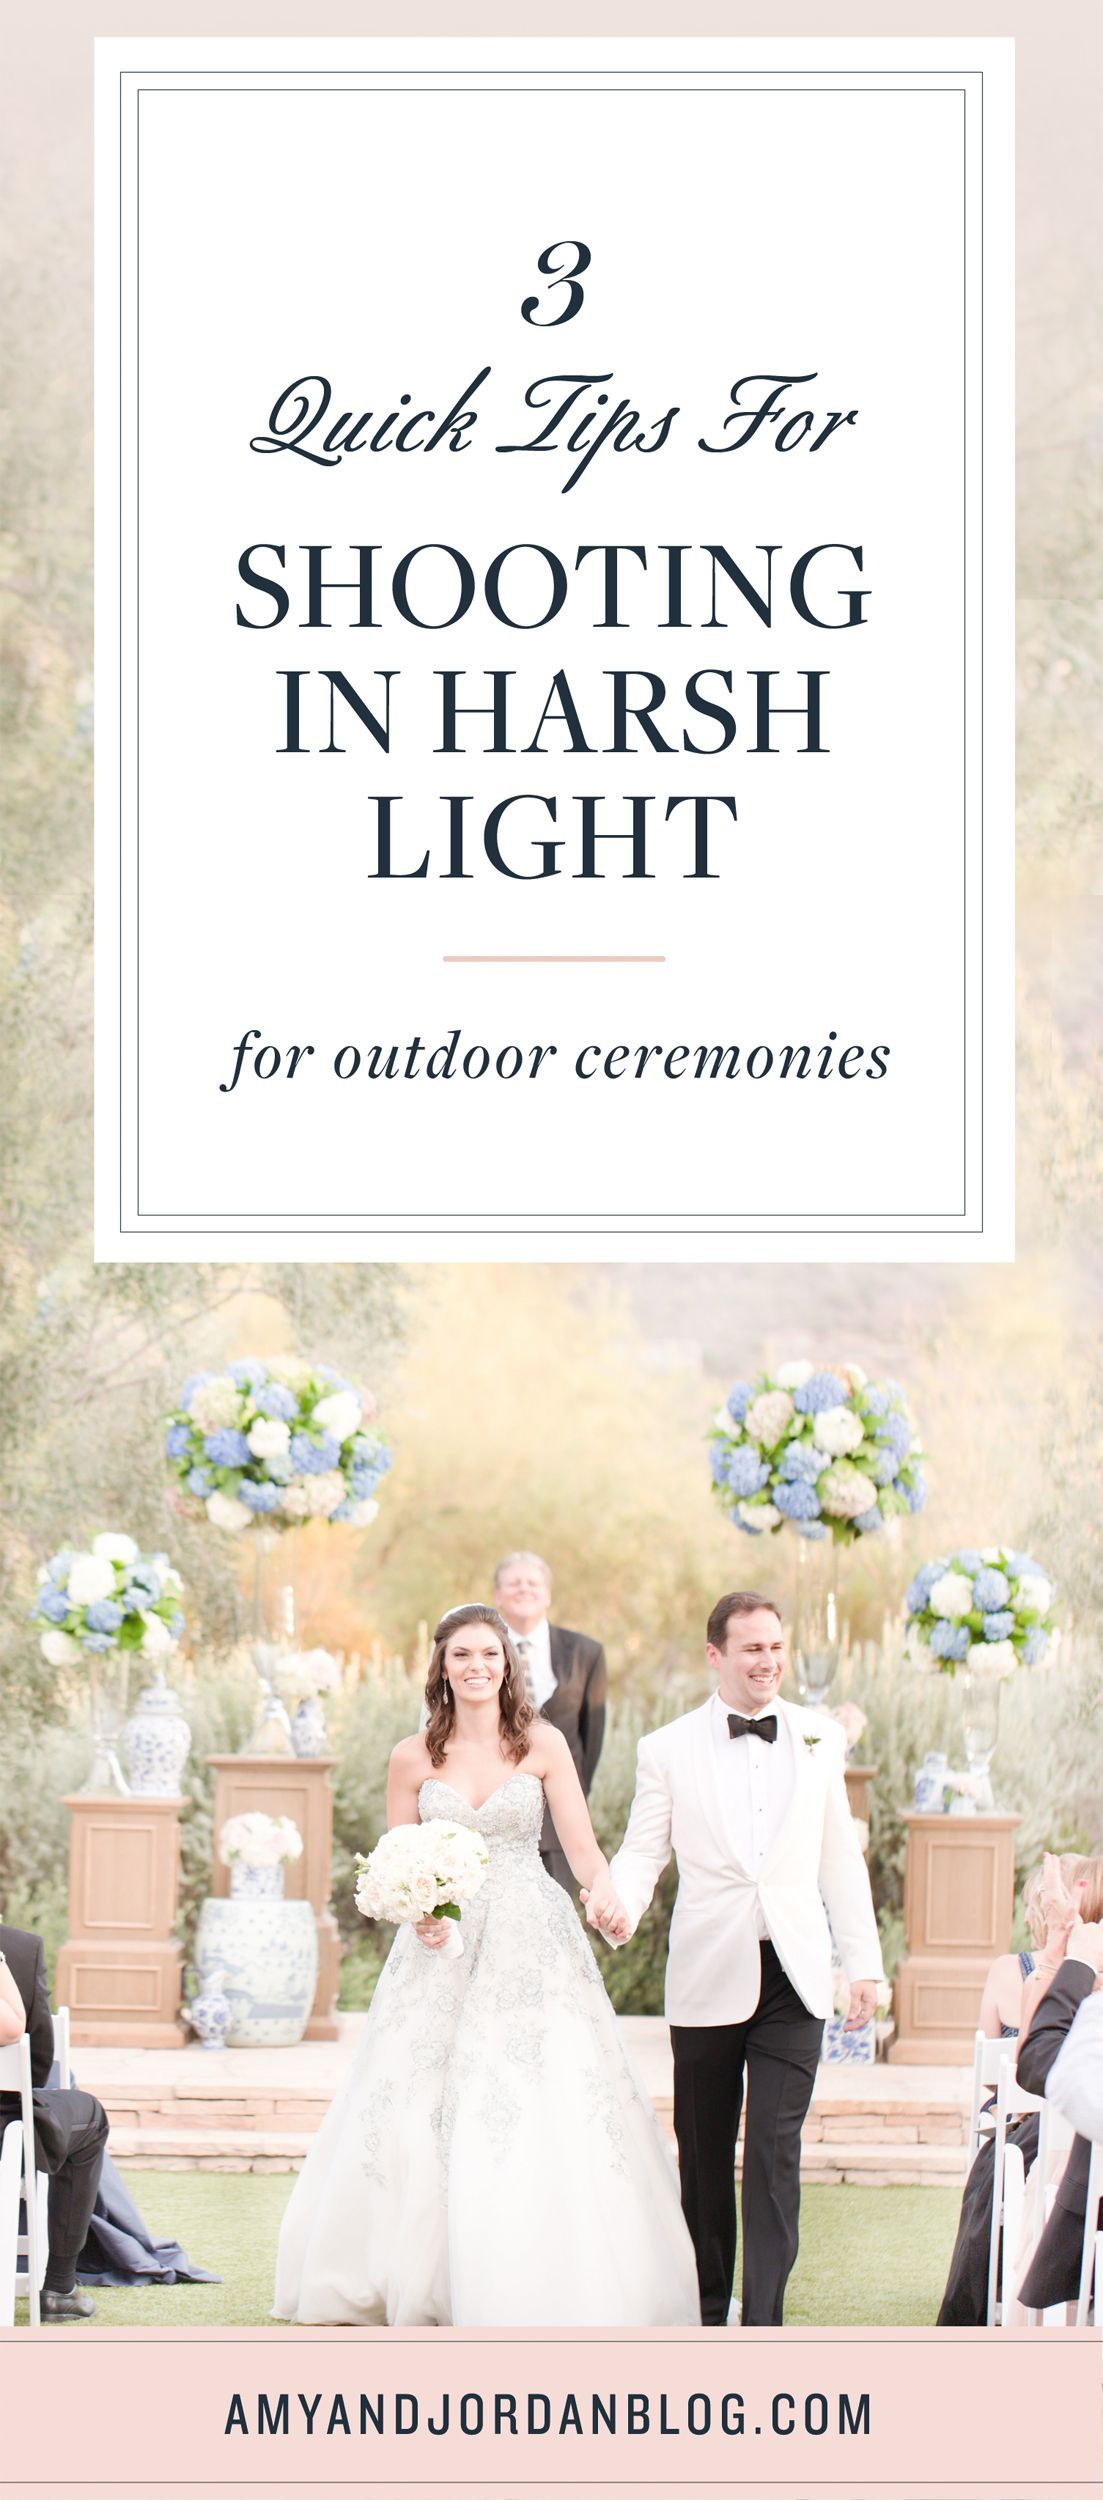 Outdoor Ceremonies in Harsh Light If you've EVER shot an outdoor wedding ceremony before, you know that sometimes the light isn't ideal! In fact, a lot of times, it can be REALLY harsh! Especially when the bride is first coming down the aisle! We'll teach you our three quick tips for shooting outdoor ceremonies in harsh light that should hopefully ma